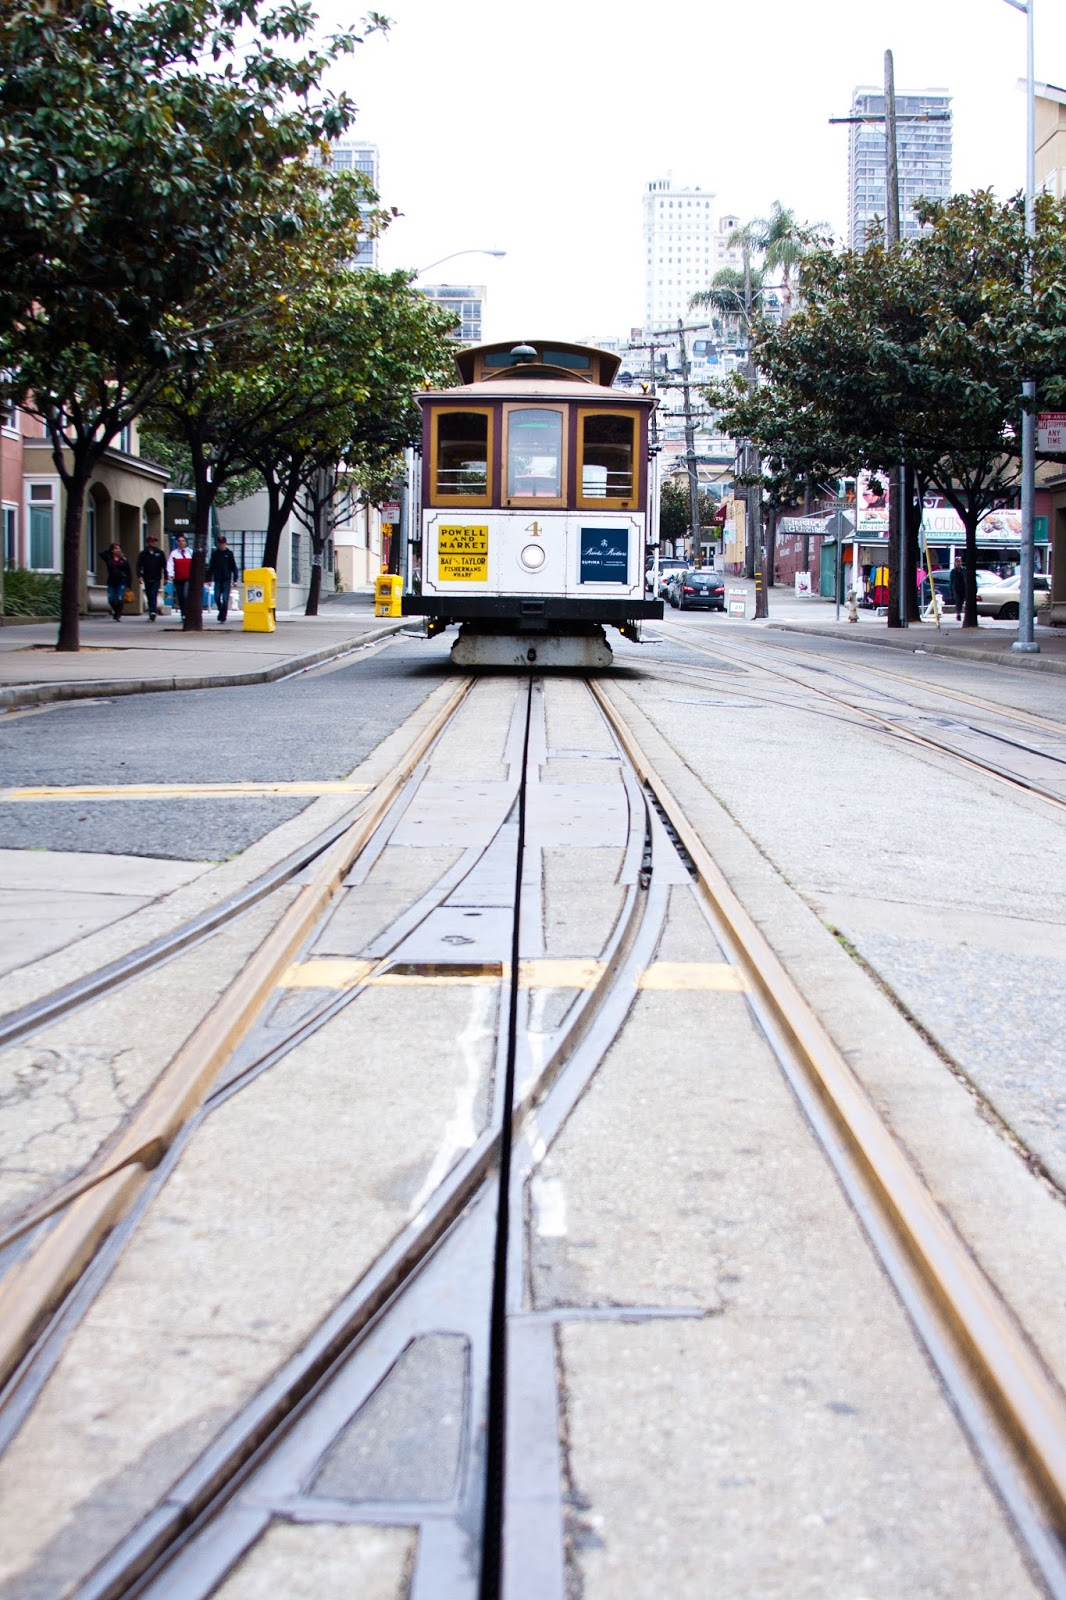 A cable car at Fisherman's Wharf.